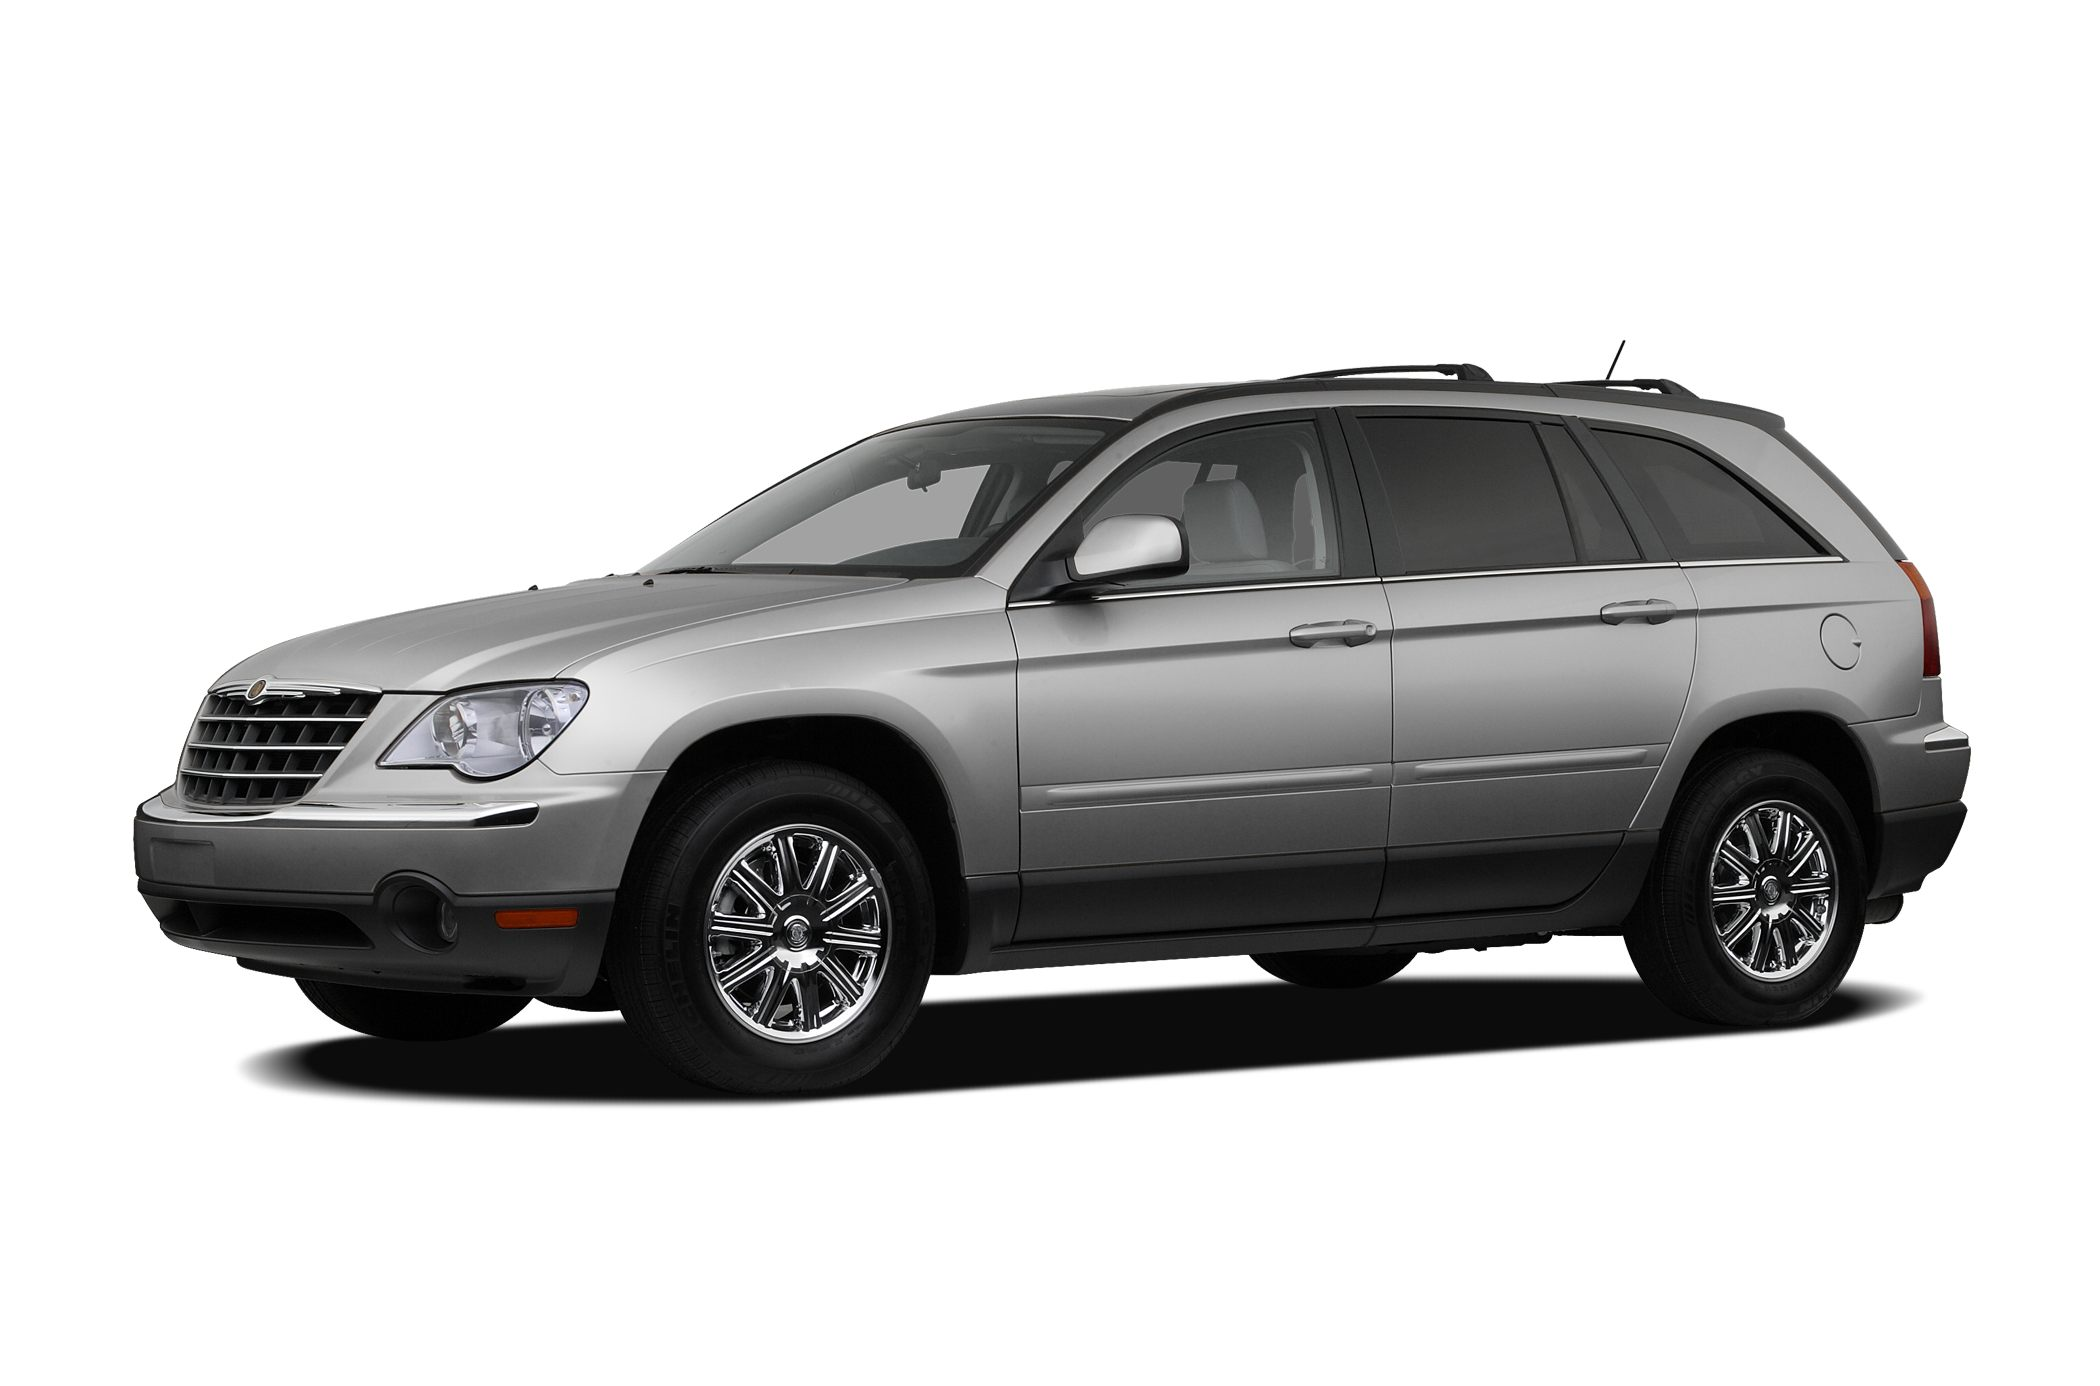 2008 Chrysler Pacifica LX SUV for sale in Manassas for $5,995 with 137,666 miles.